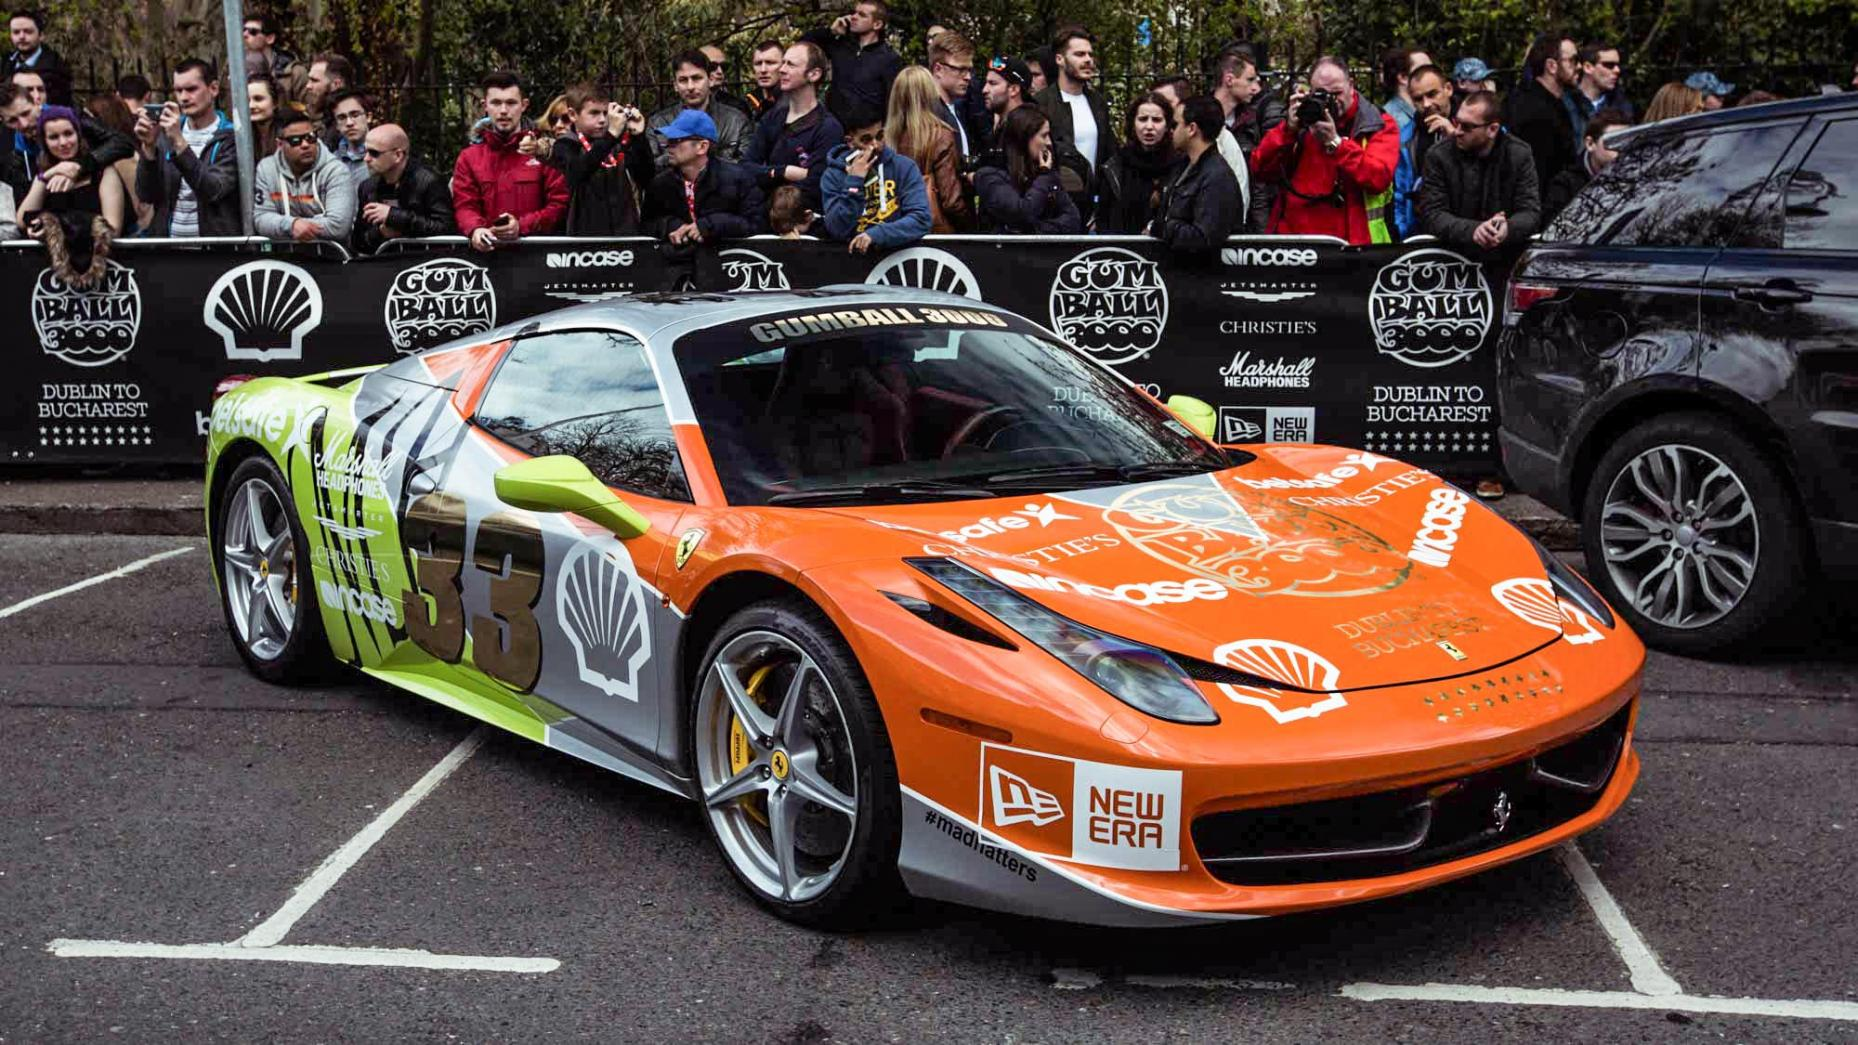 ferrari 458 italia gumball 3000 2016 carsception actualit automobile. Black Bedroom Furniture Sets. Home Design Ideas